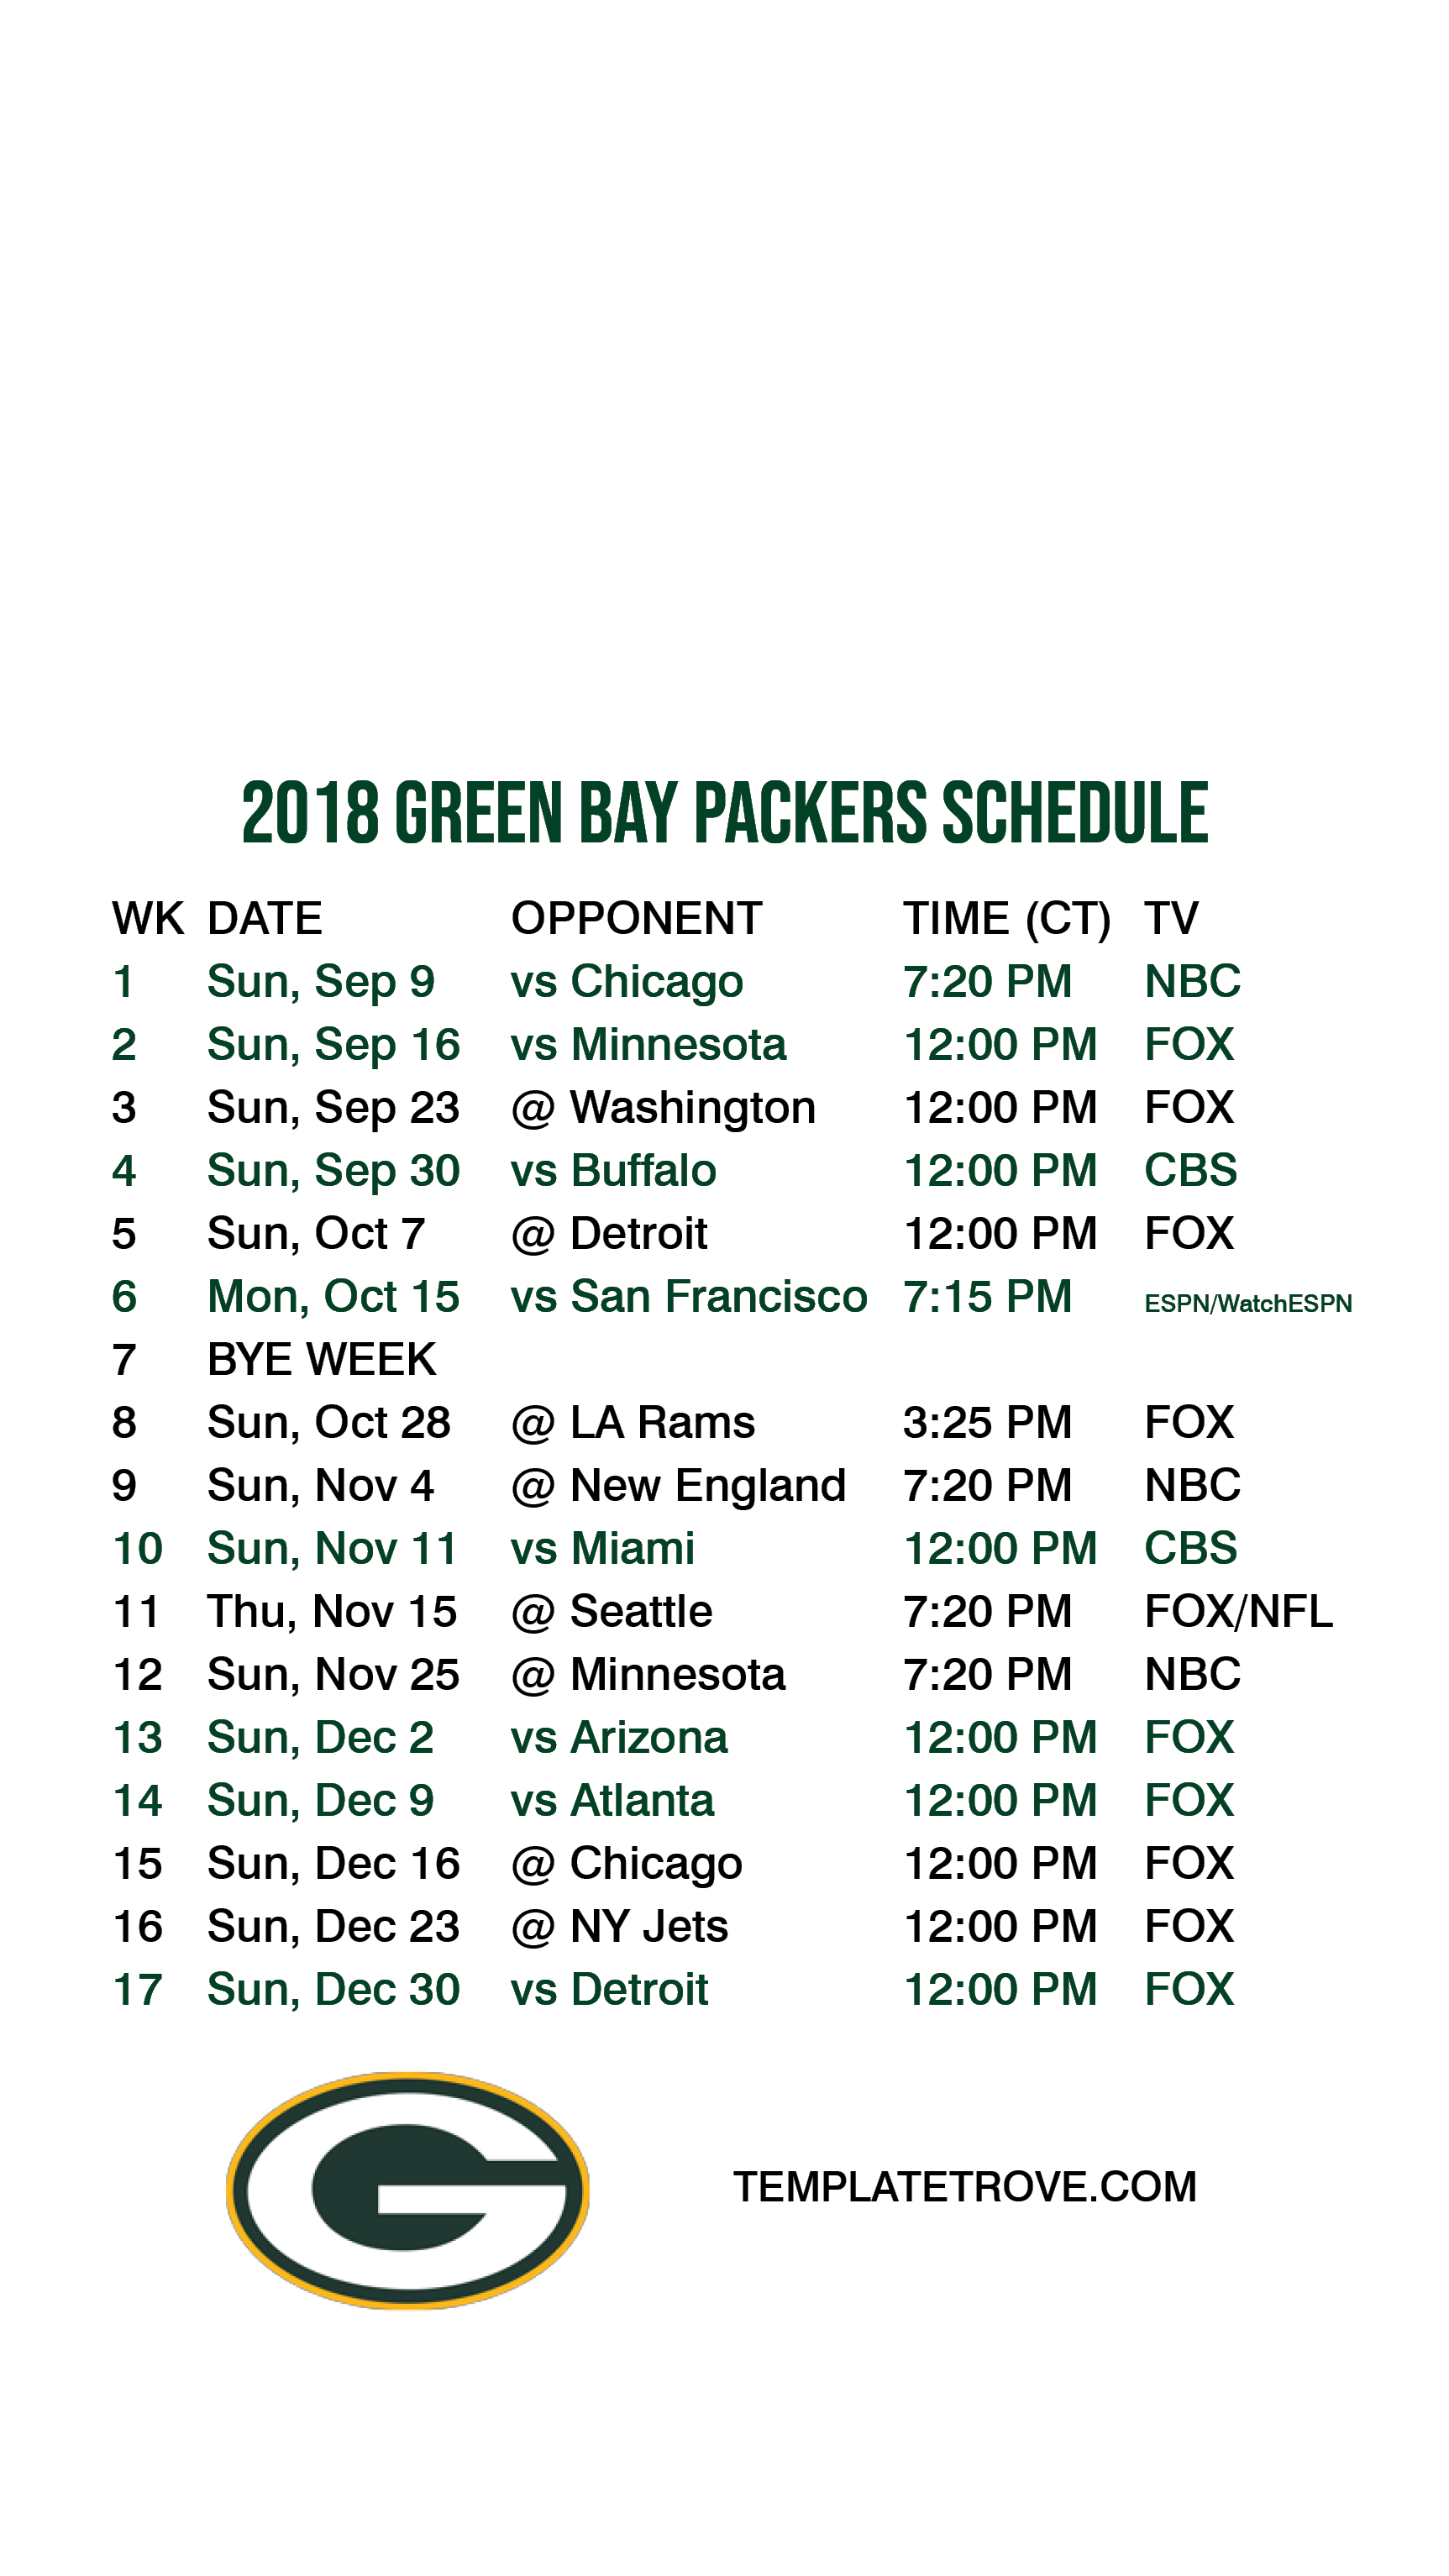 2018 2019 Green Bay Packers Lock Screen Schedule For Iphone 6 7 8 Plus